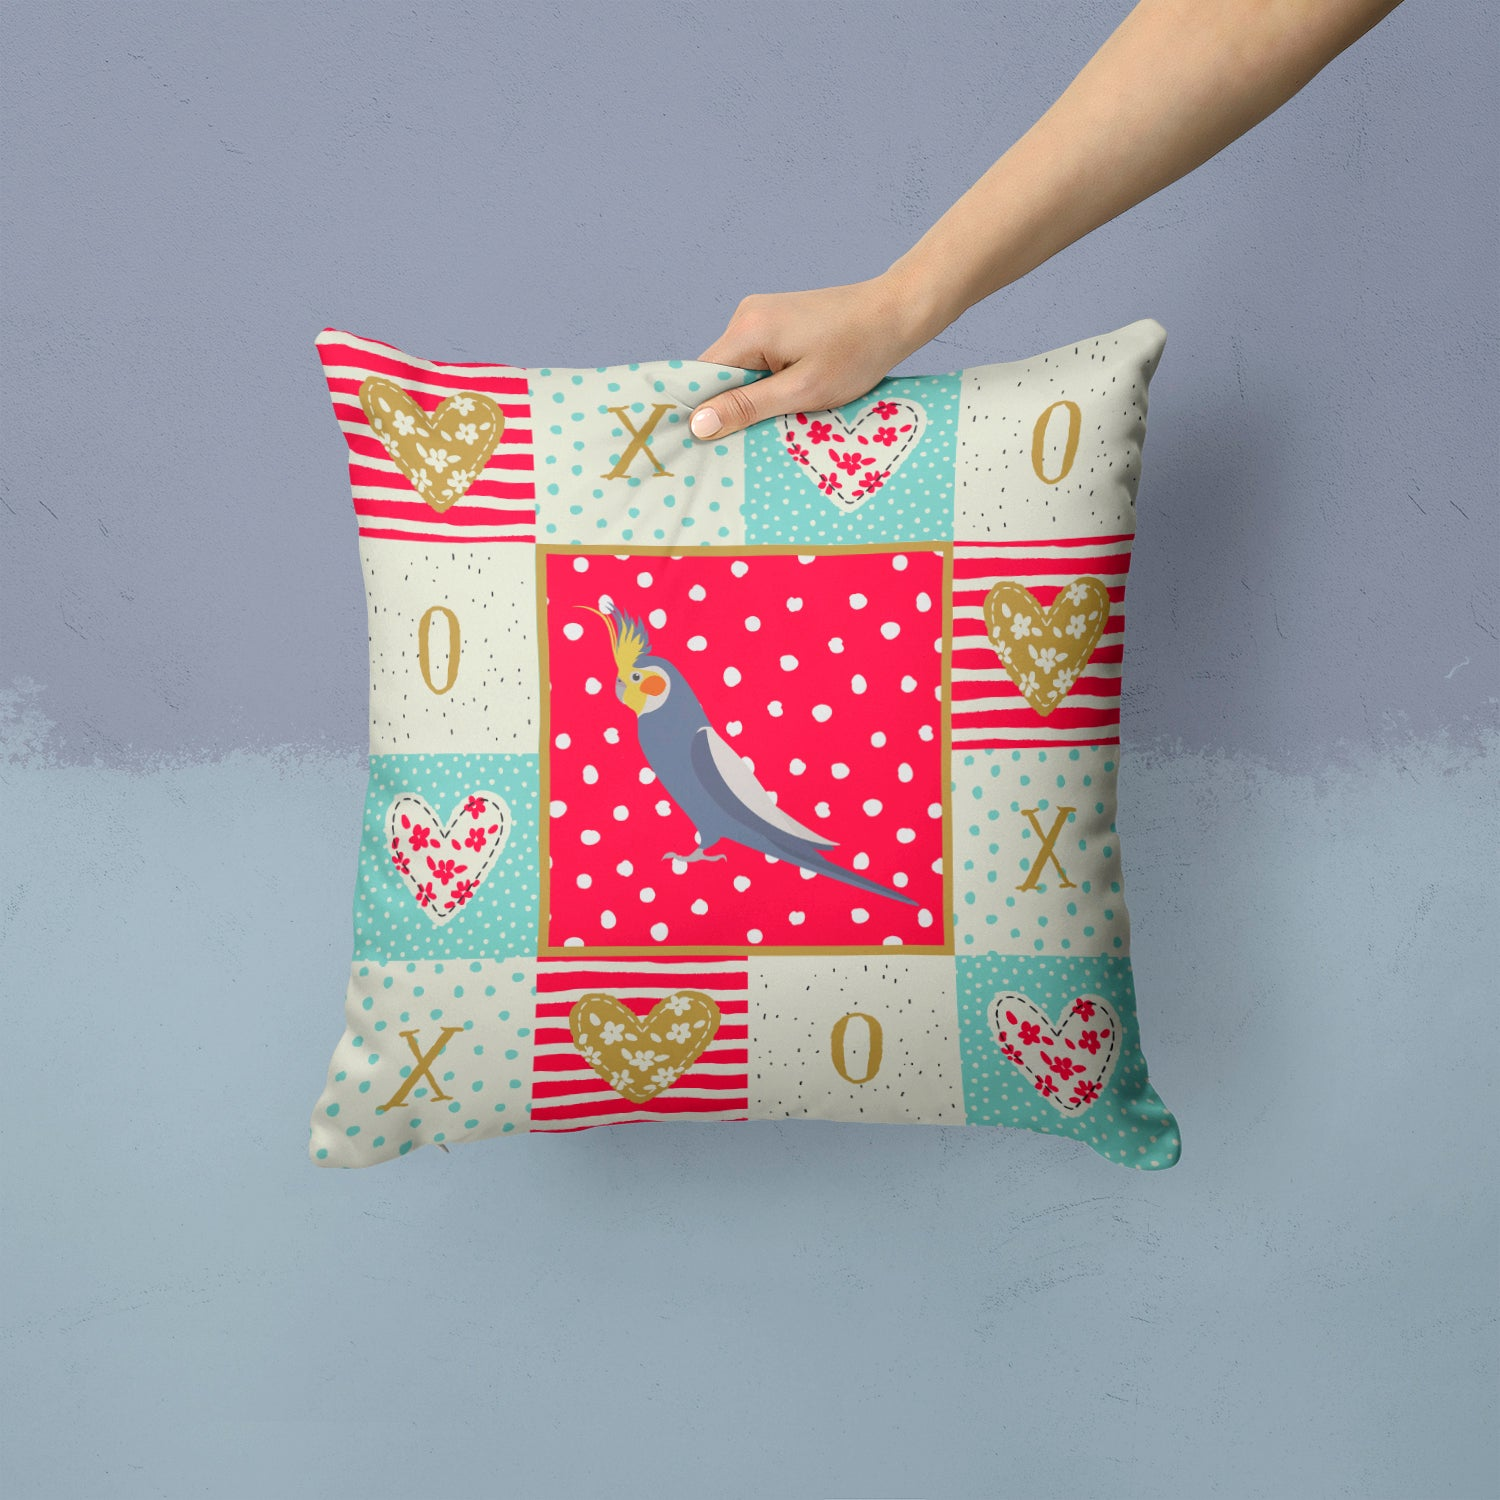 Cockatiel Love Fabric Decorative Pillow CK5521PW1414 by Caroline's Treasures